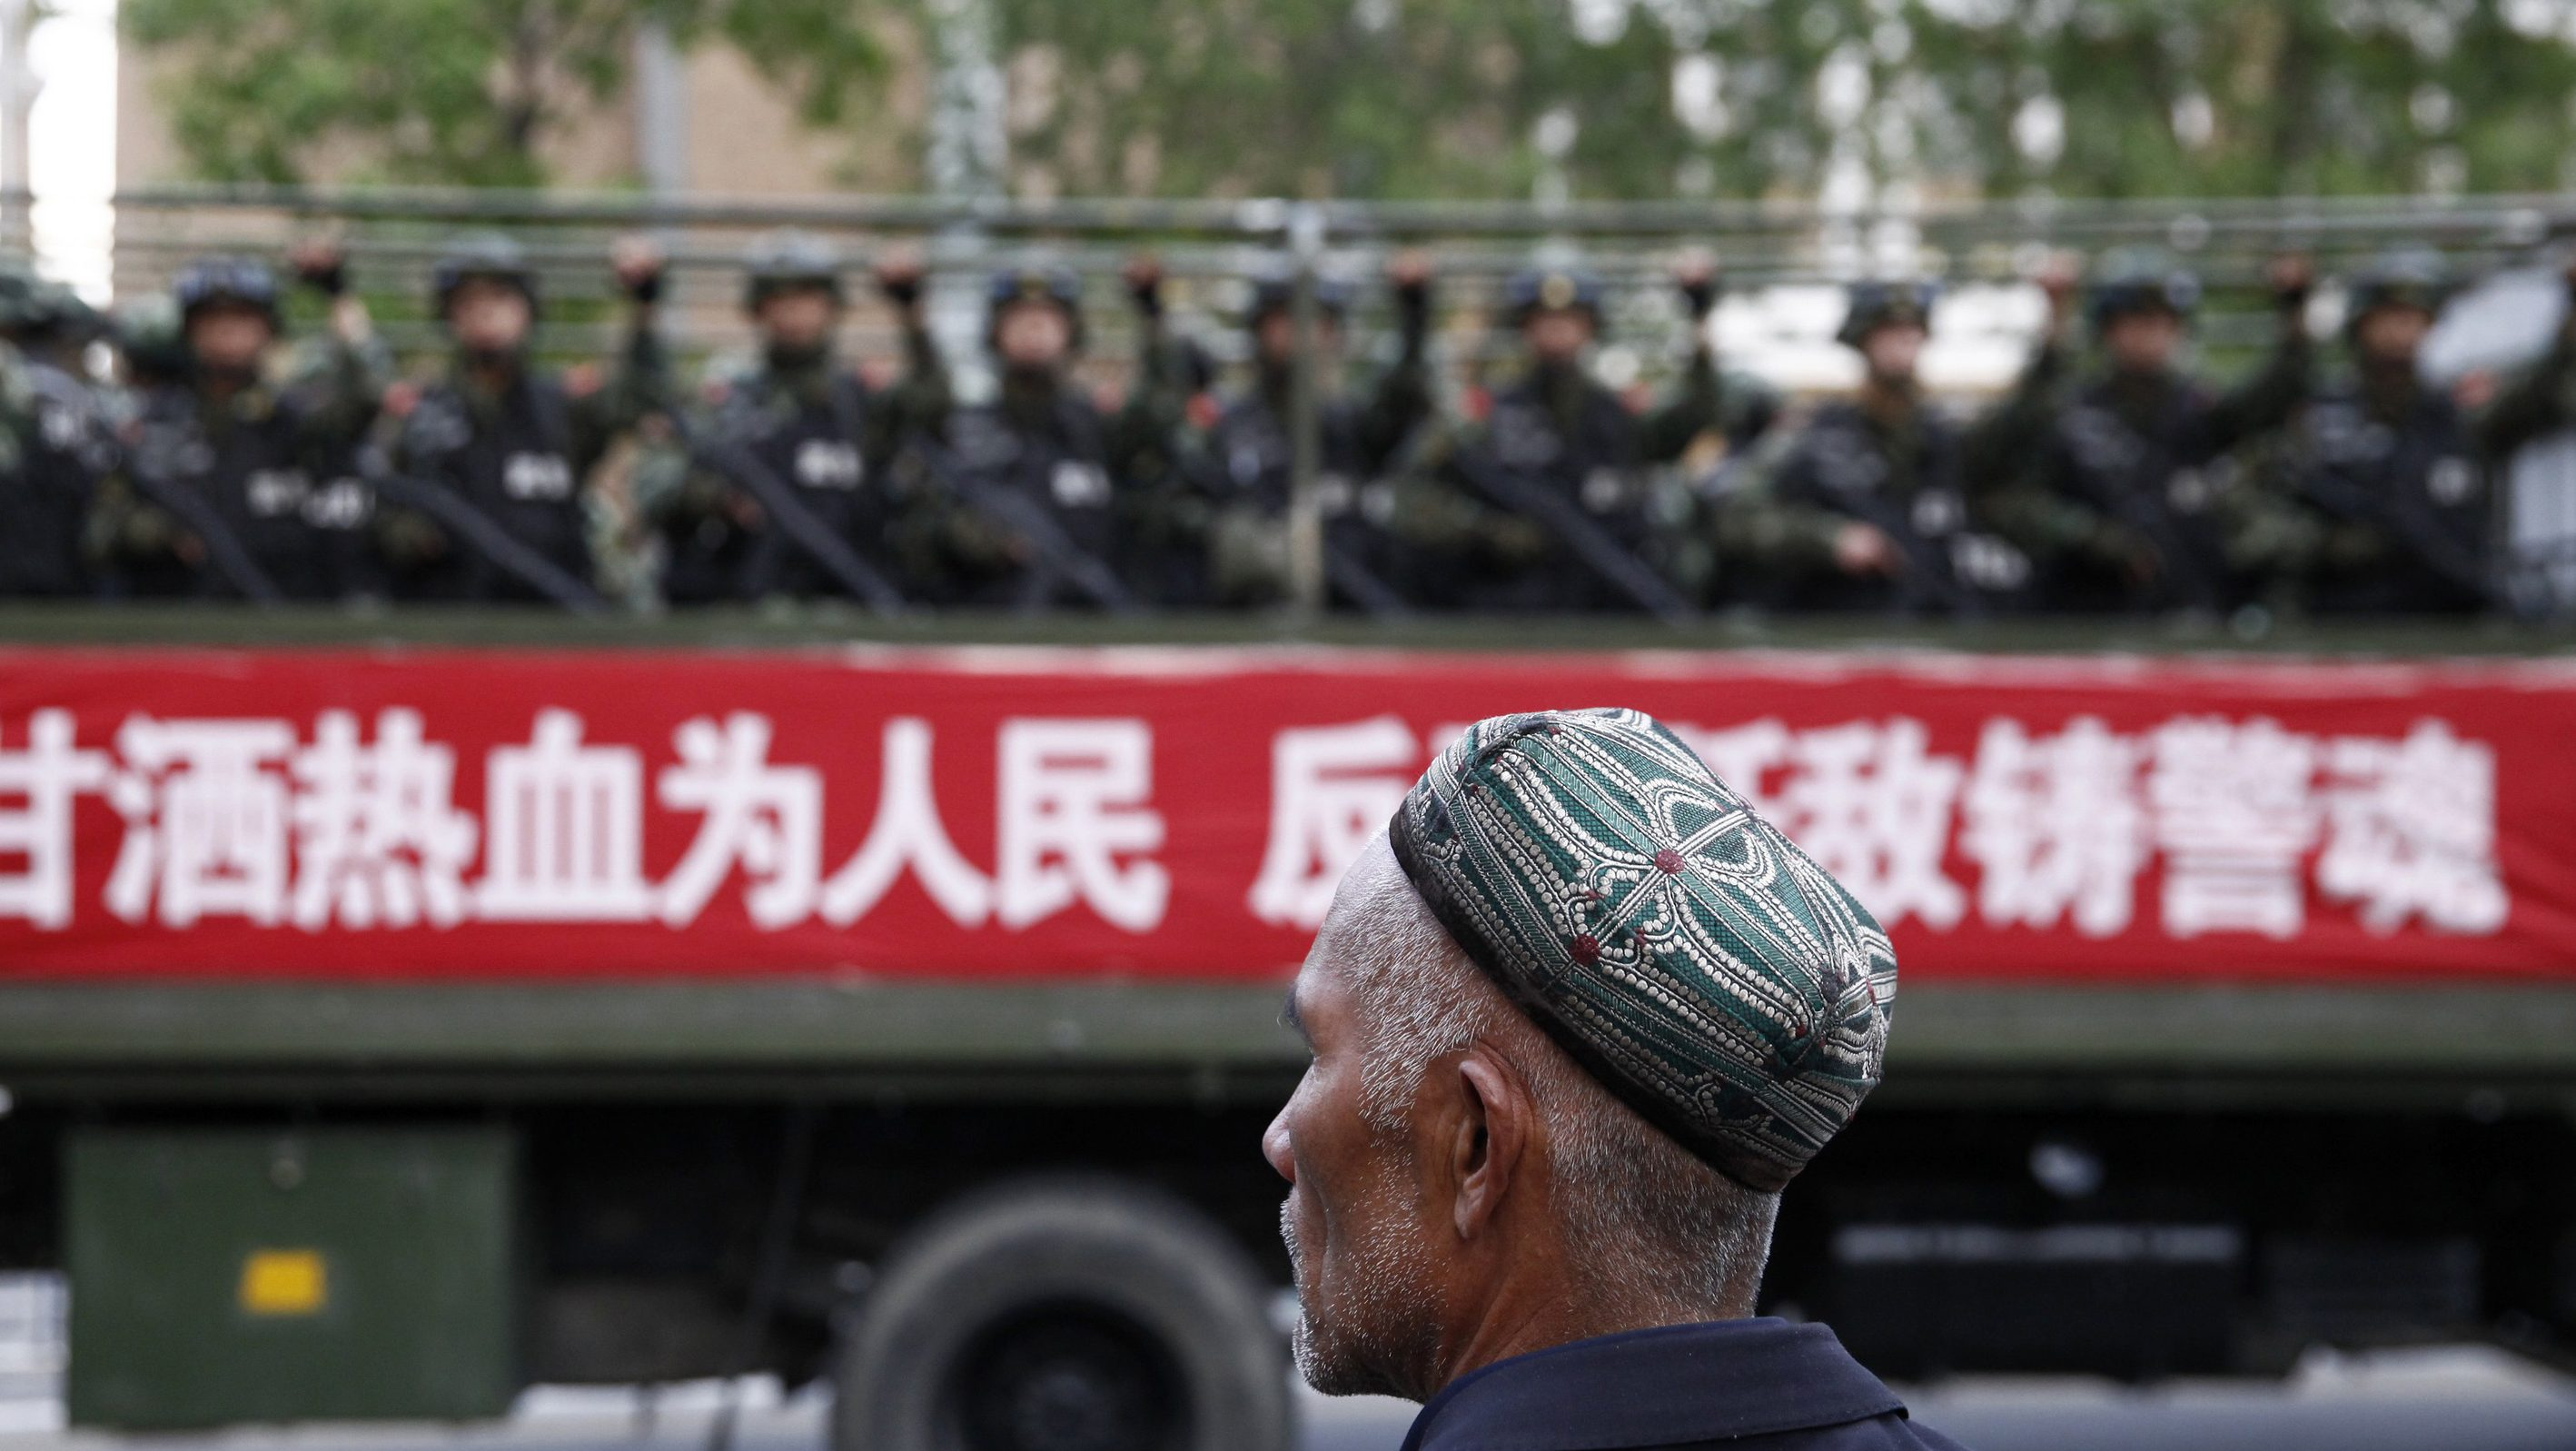 """A Uighur man looks on as a truck carrying paramilitary policemen travel along a street during an anti-terrorism oath-taking rally in Urumqi, Xinjiang Uighur Autonomous Region May 23, 2014. China launched a one-year campaign against terrorist violence in Xinjiang Uighur Autonomous Region on Friday, after 39 people were killed and 94 injured in a terrorist attack on Thursday, Xinhua News Agency reported. The Chinese characters on the banner read, """"Willingness to spill blood for the people. Countering terrorism and fighting the enemies is part of the police spirit."""" Picture taken May 23, 2014. REUTERS/Stringer"""